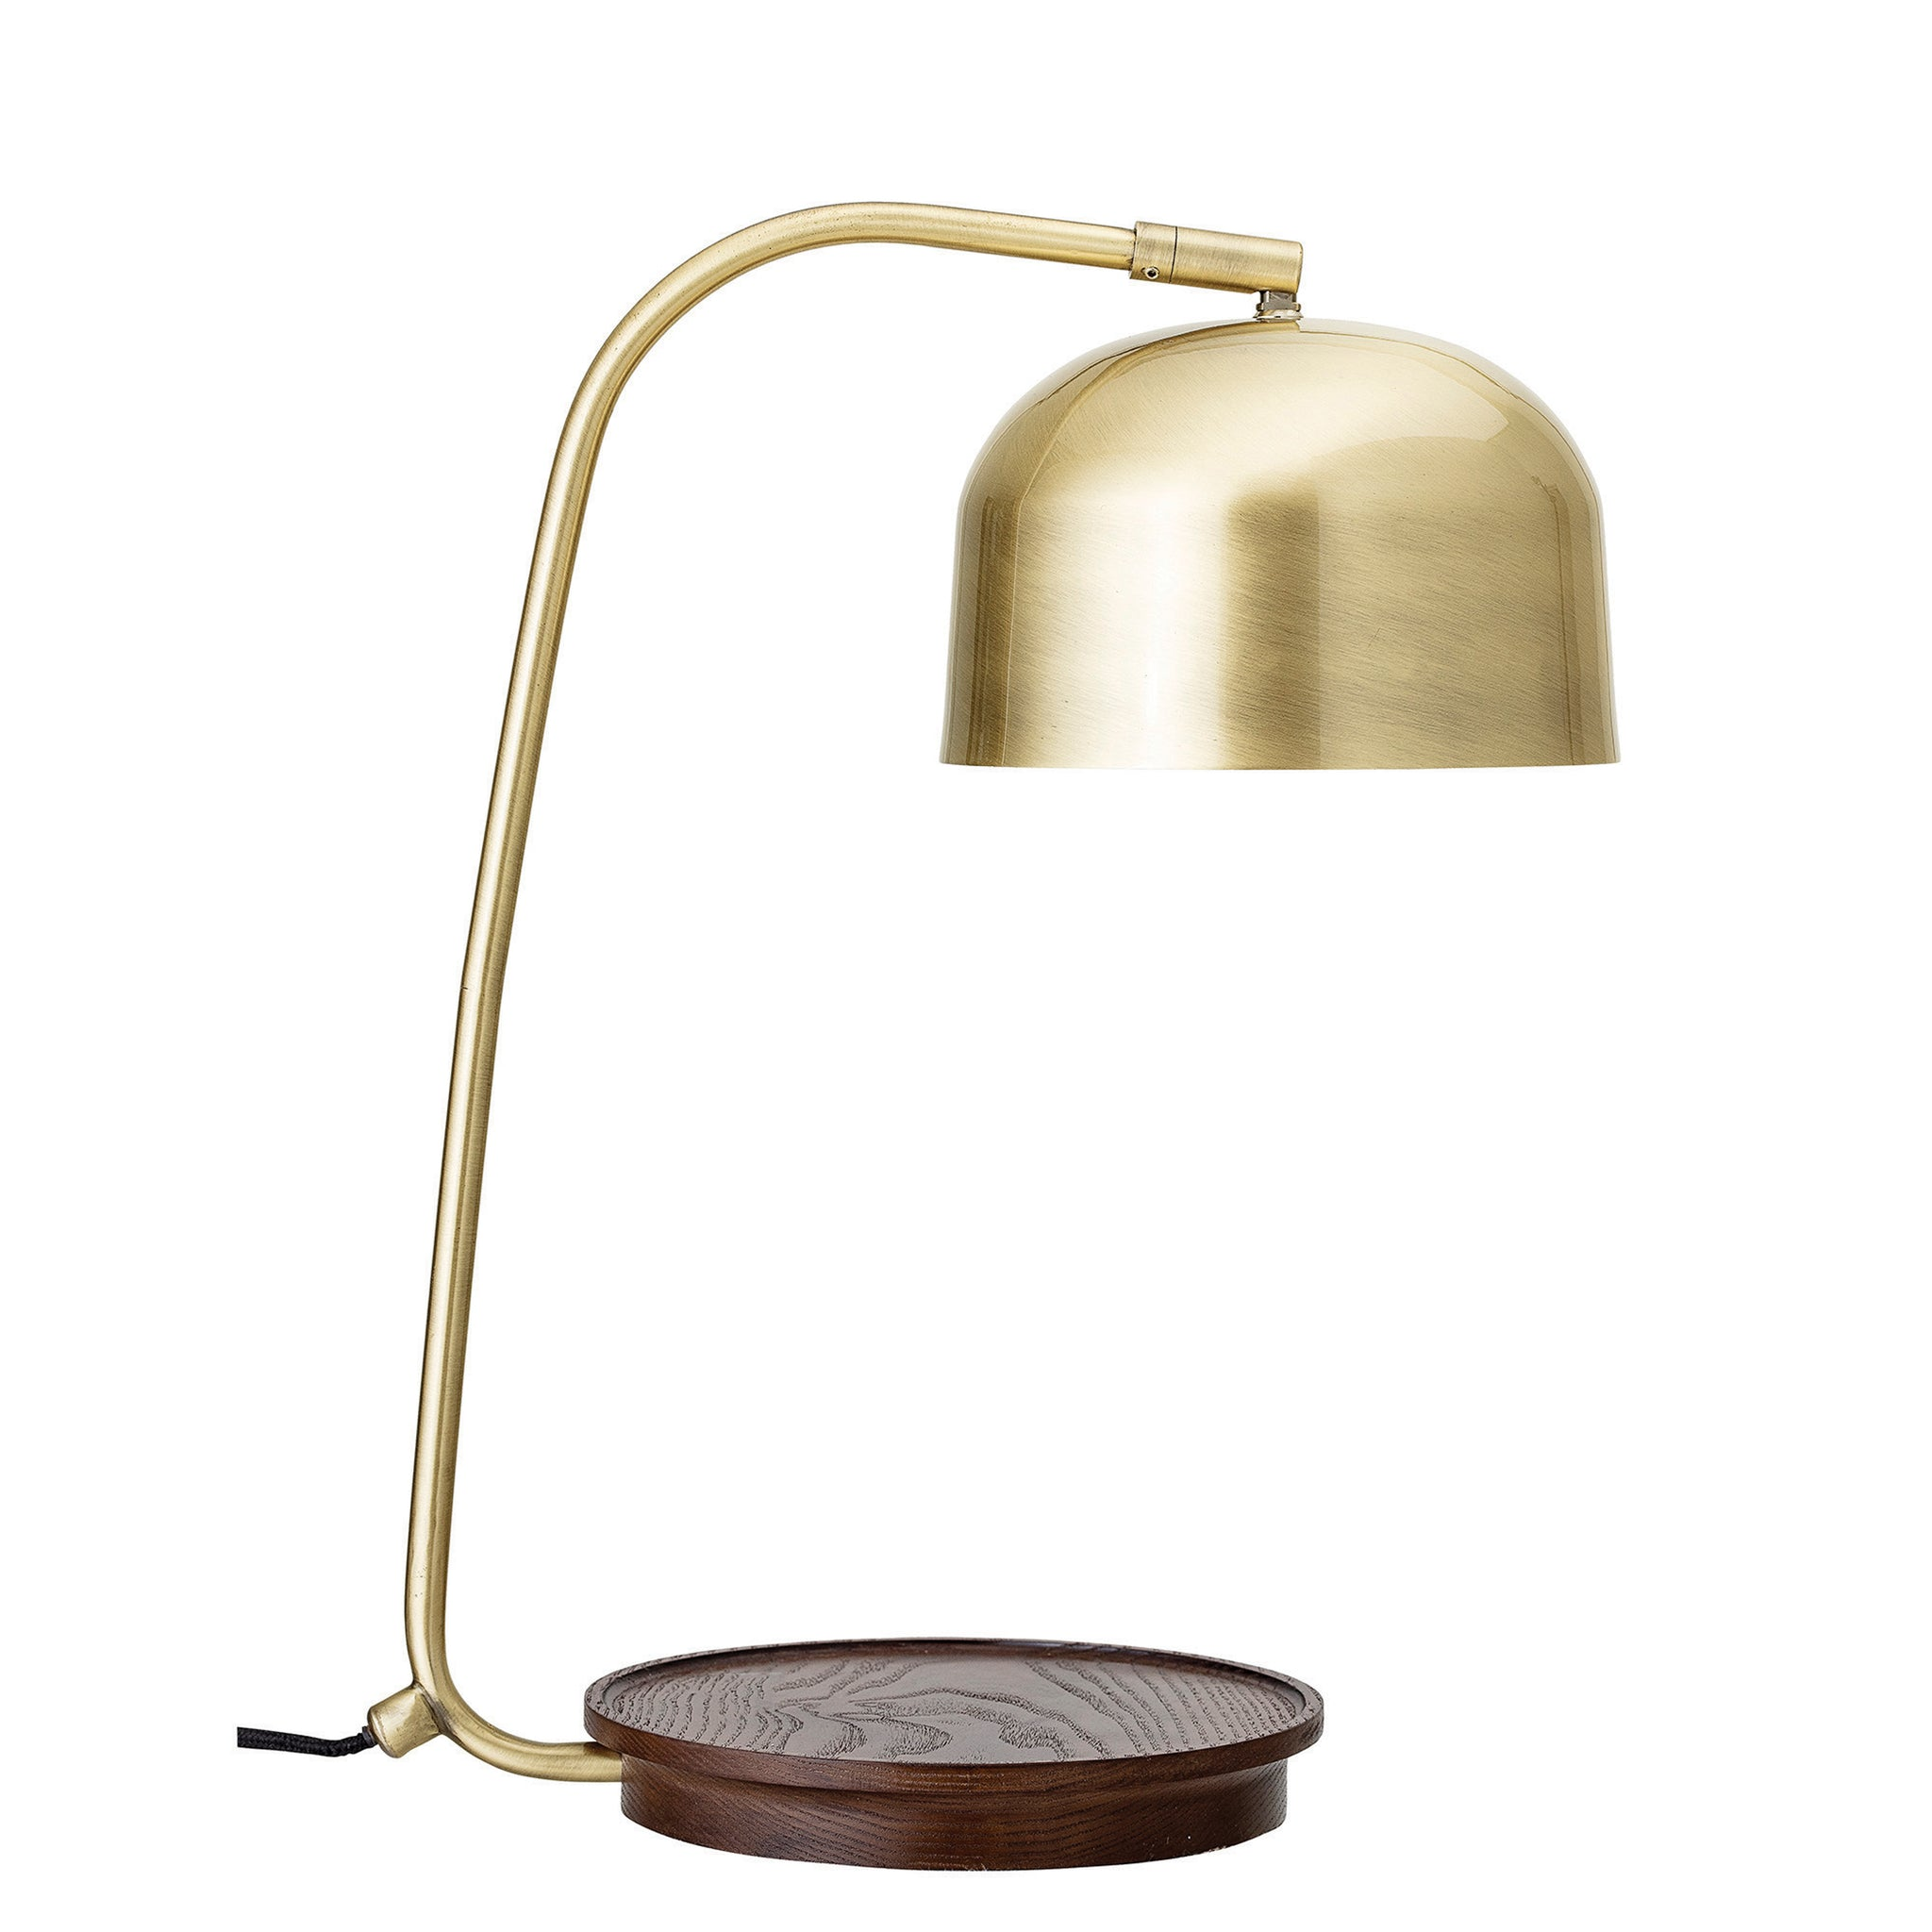 Brass Metal Table Lamp with Wood Tray Base & In-Line Switch